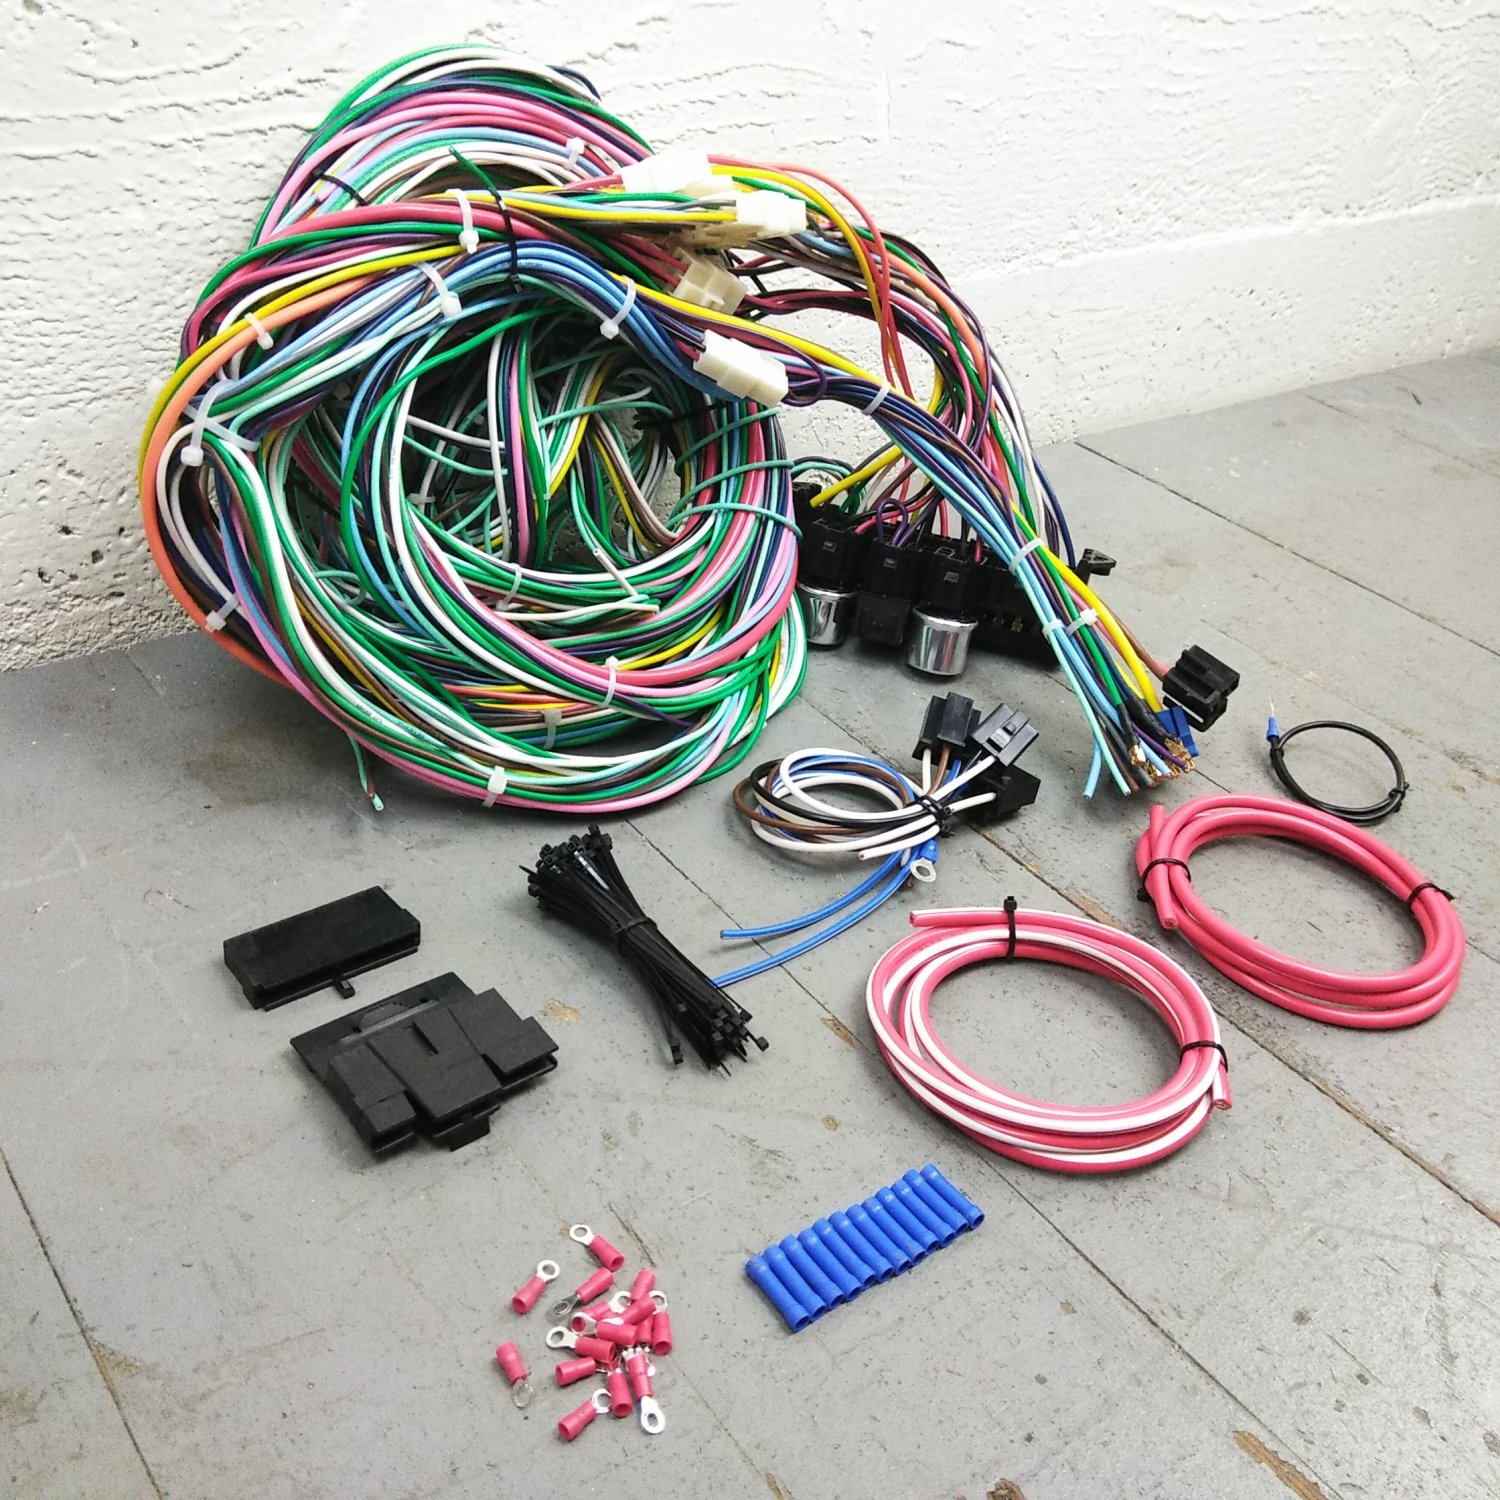 1968 1974 plymouth roadrunner wire harness upgrade kit fits